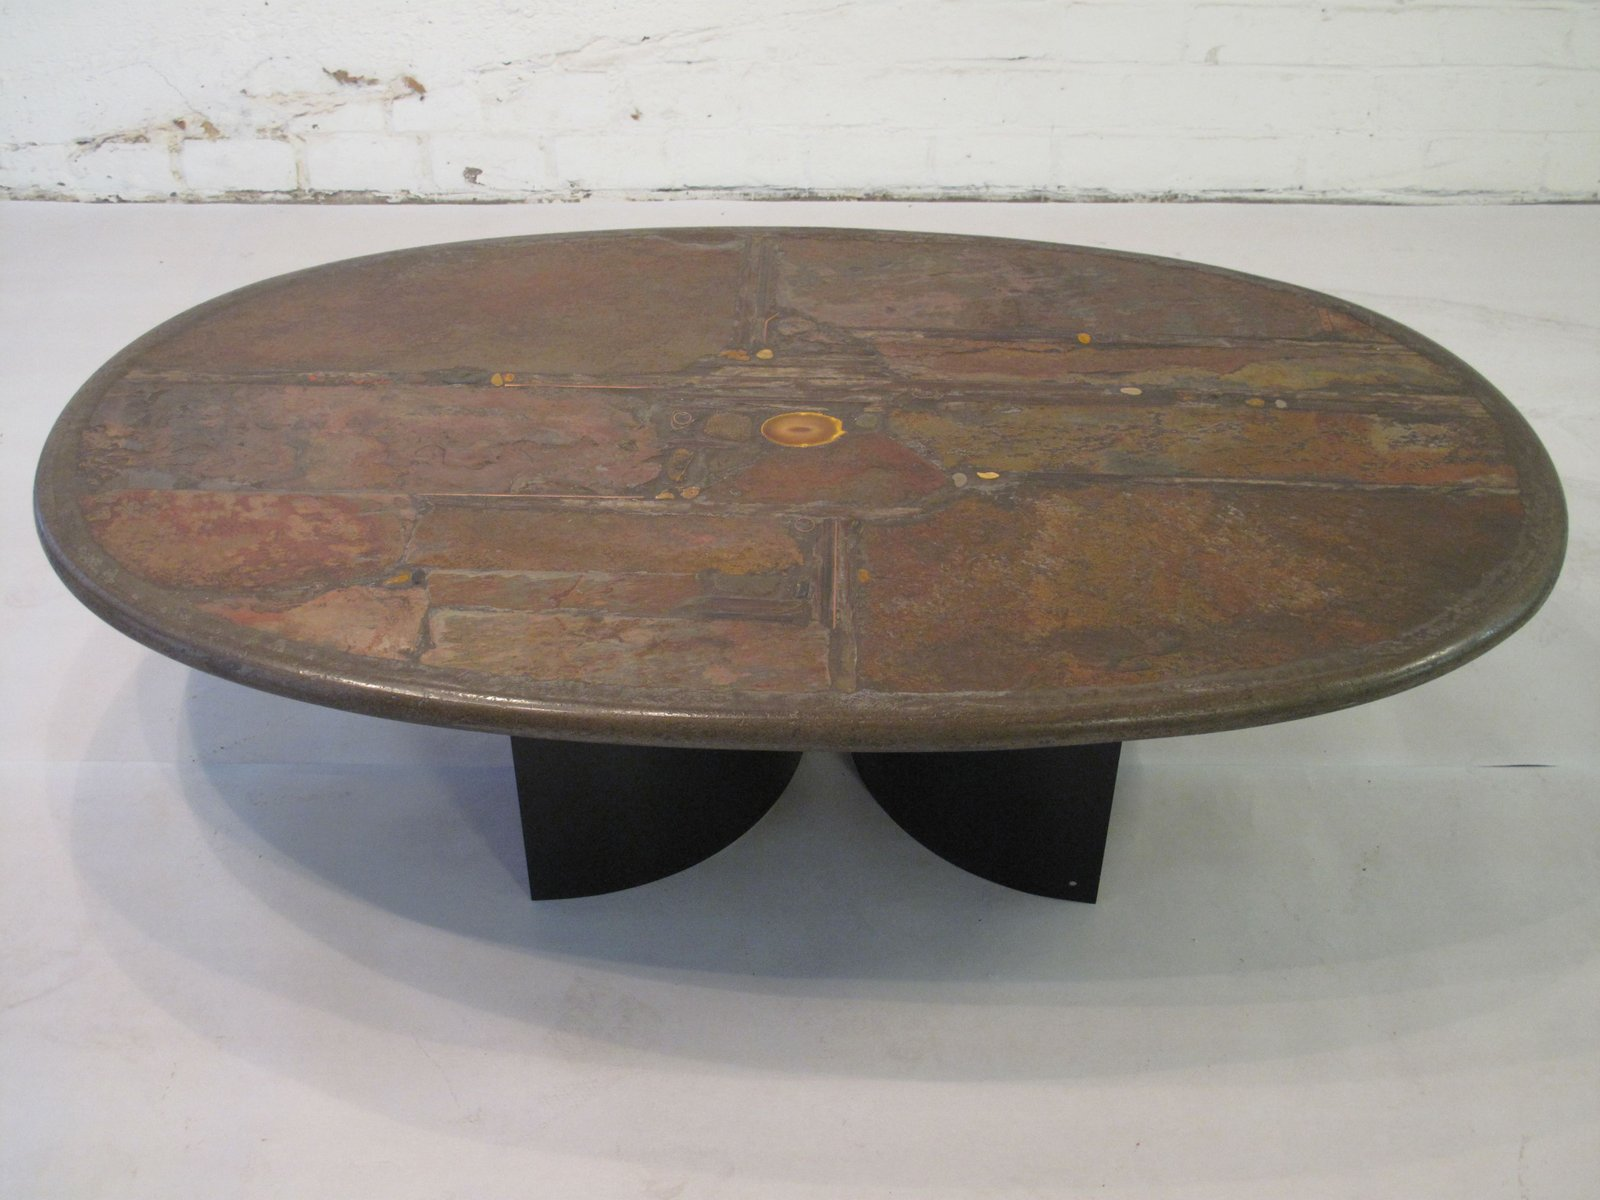 stone shale brass copper and agate coffee table by paul kingma 1990 for sale at pamono. Black Bedroom Furniture Sets. Home Design Ideas